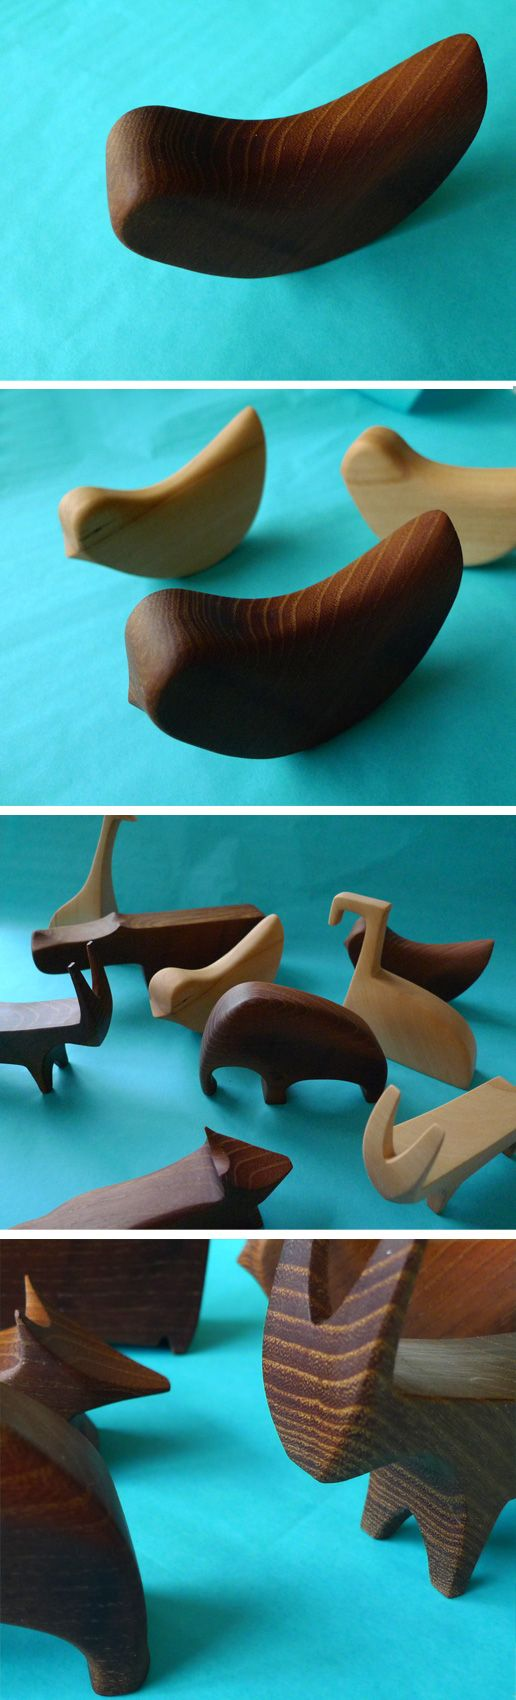 Kiskakas organic design toys-light wood ideal to chew and grab for tiny teeth and hands